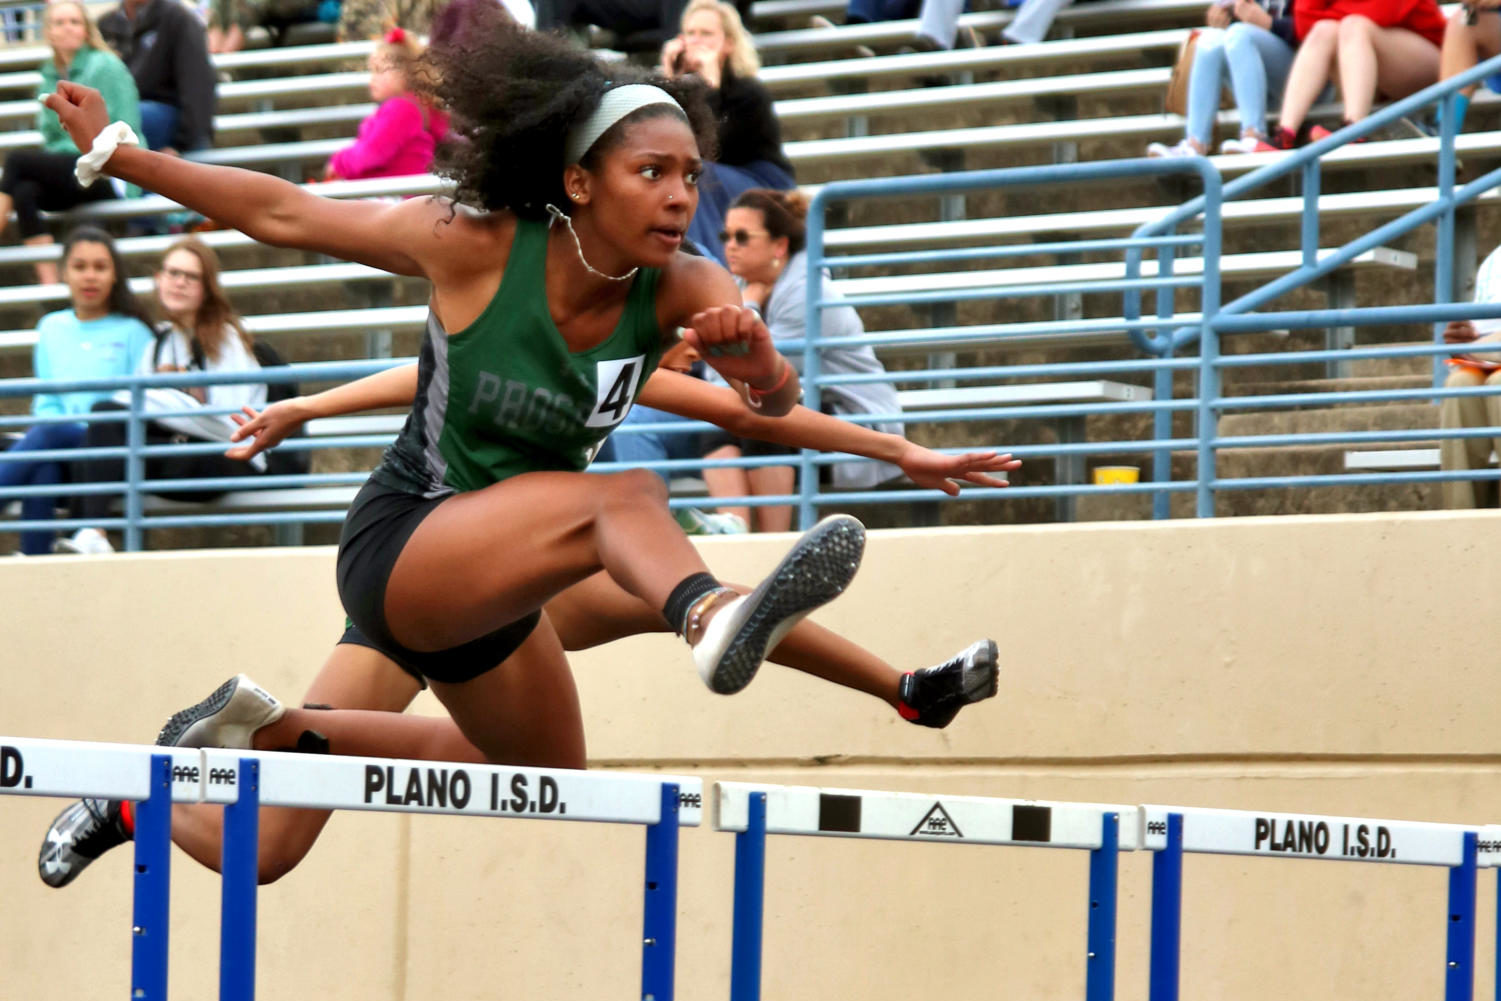 Senior Kennedy Adams leaps over a hurdle while competing. Adams and other athletes competed at Plano ISD on April 3. Adams advanced to the finals in the hurdle event that took place April 4.